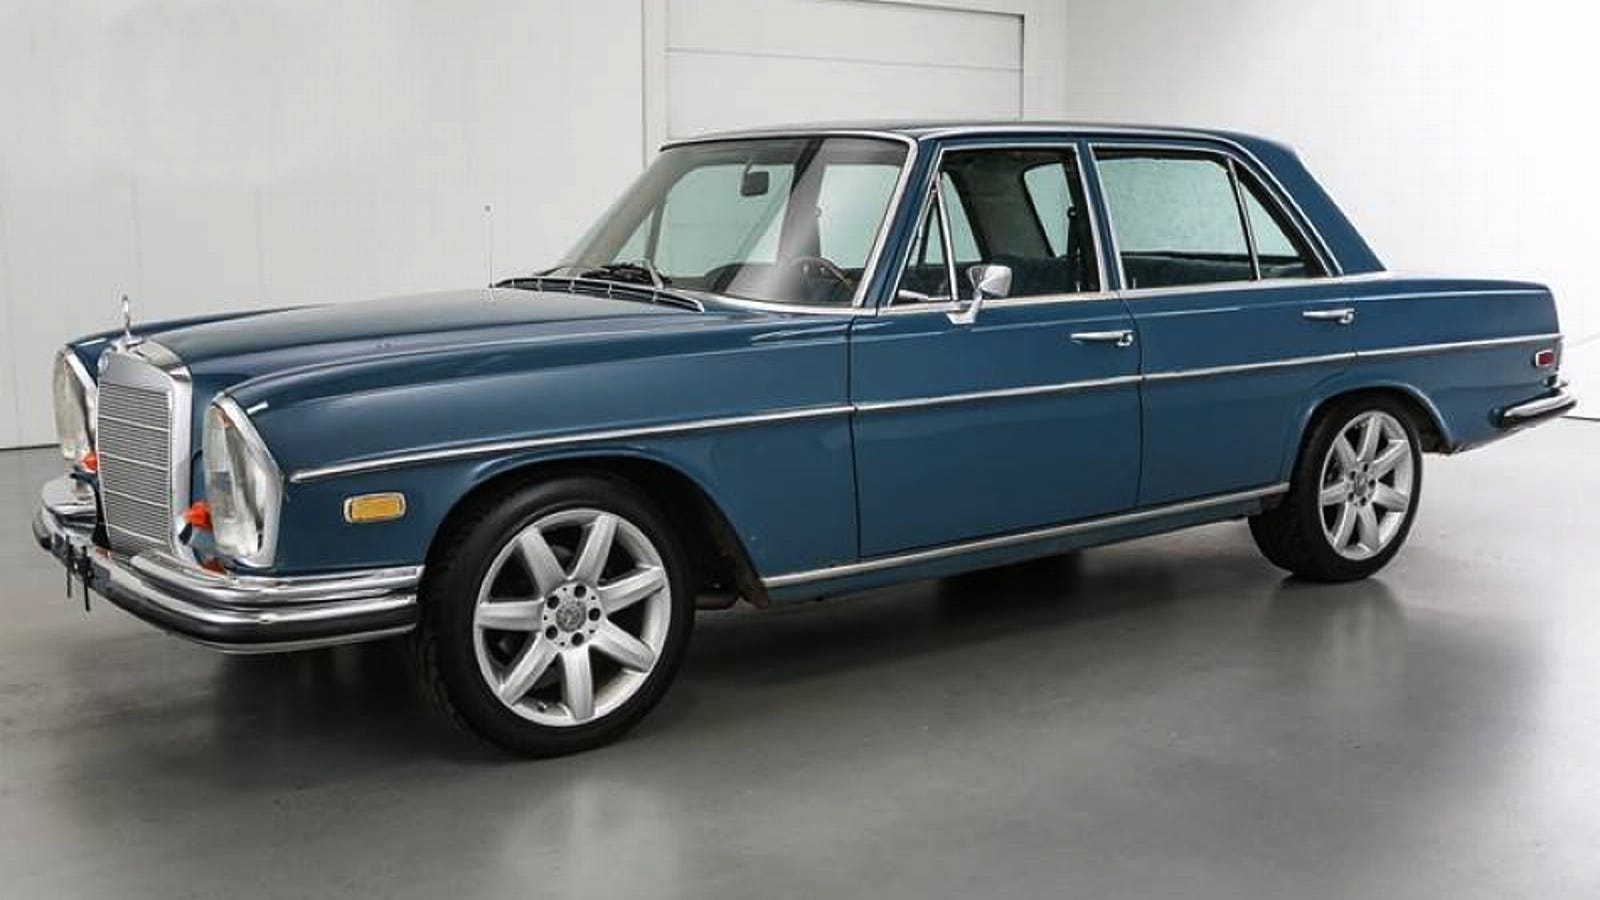 For $9,900, Could This Corvette-Powered 1968 Mercedes-Benz 250SE Be